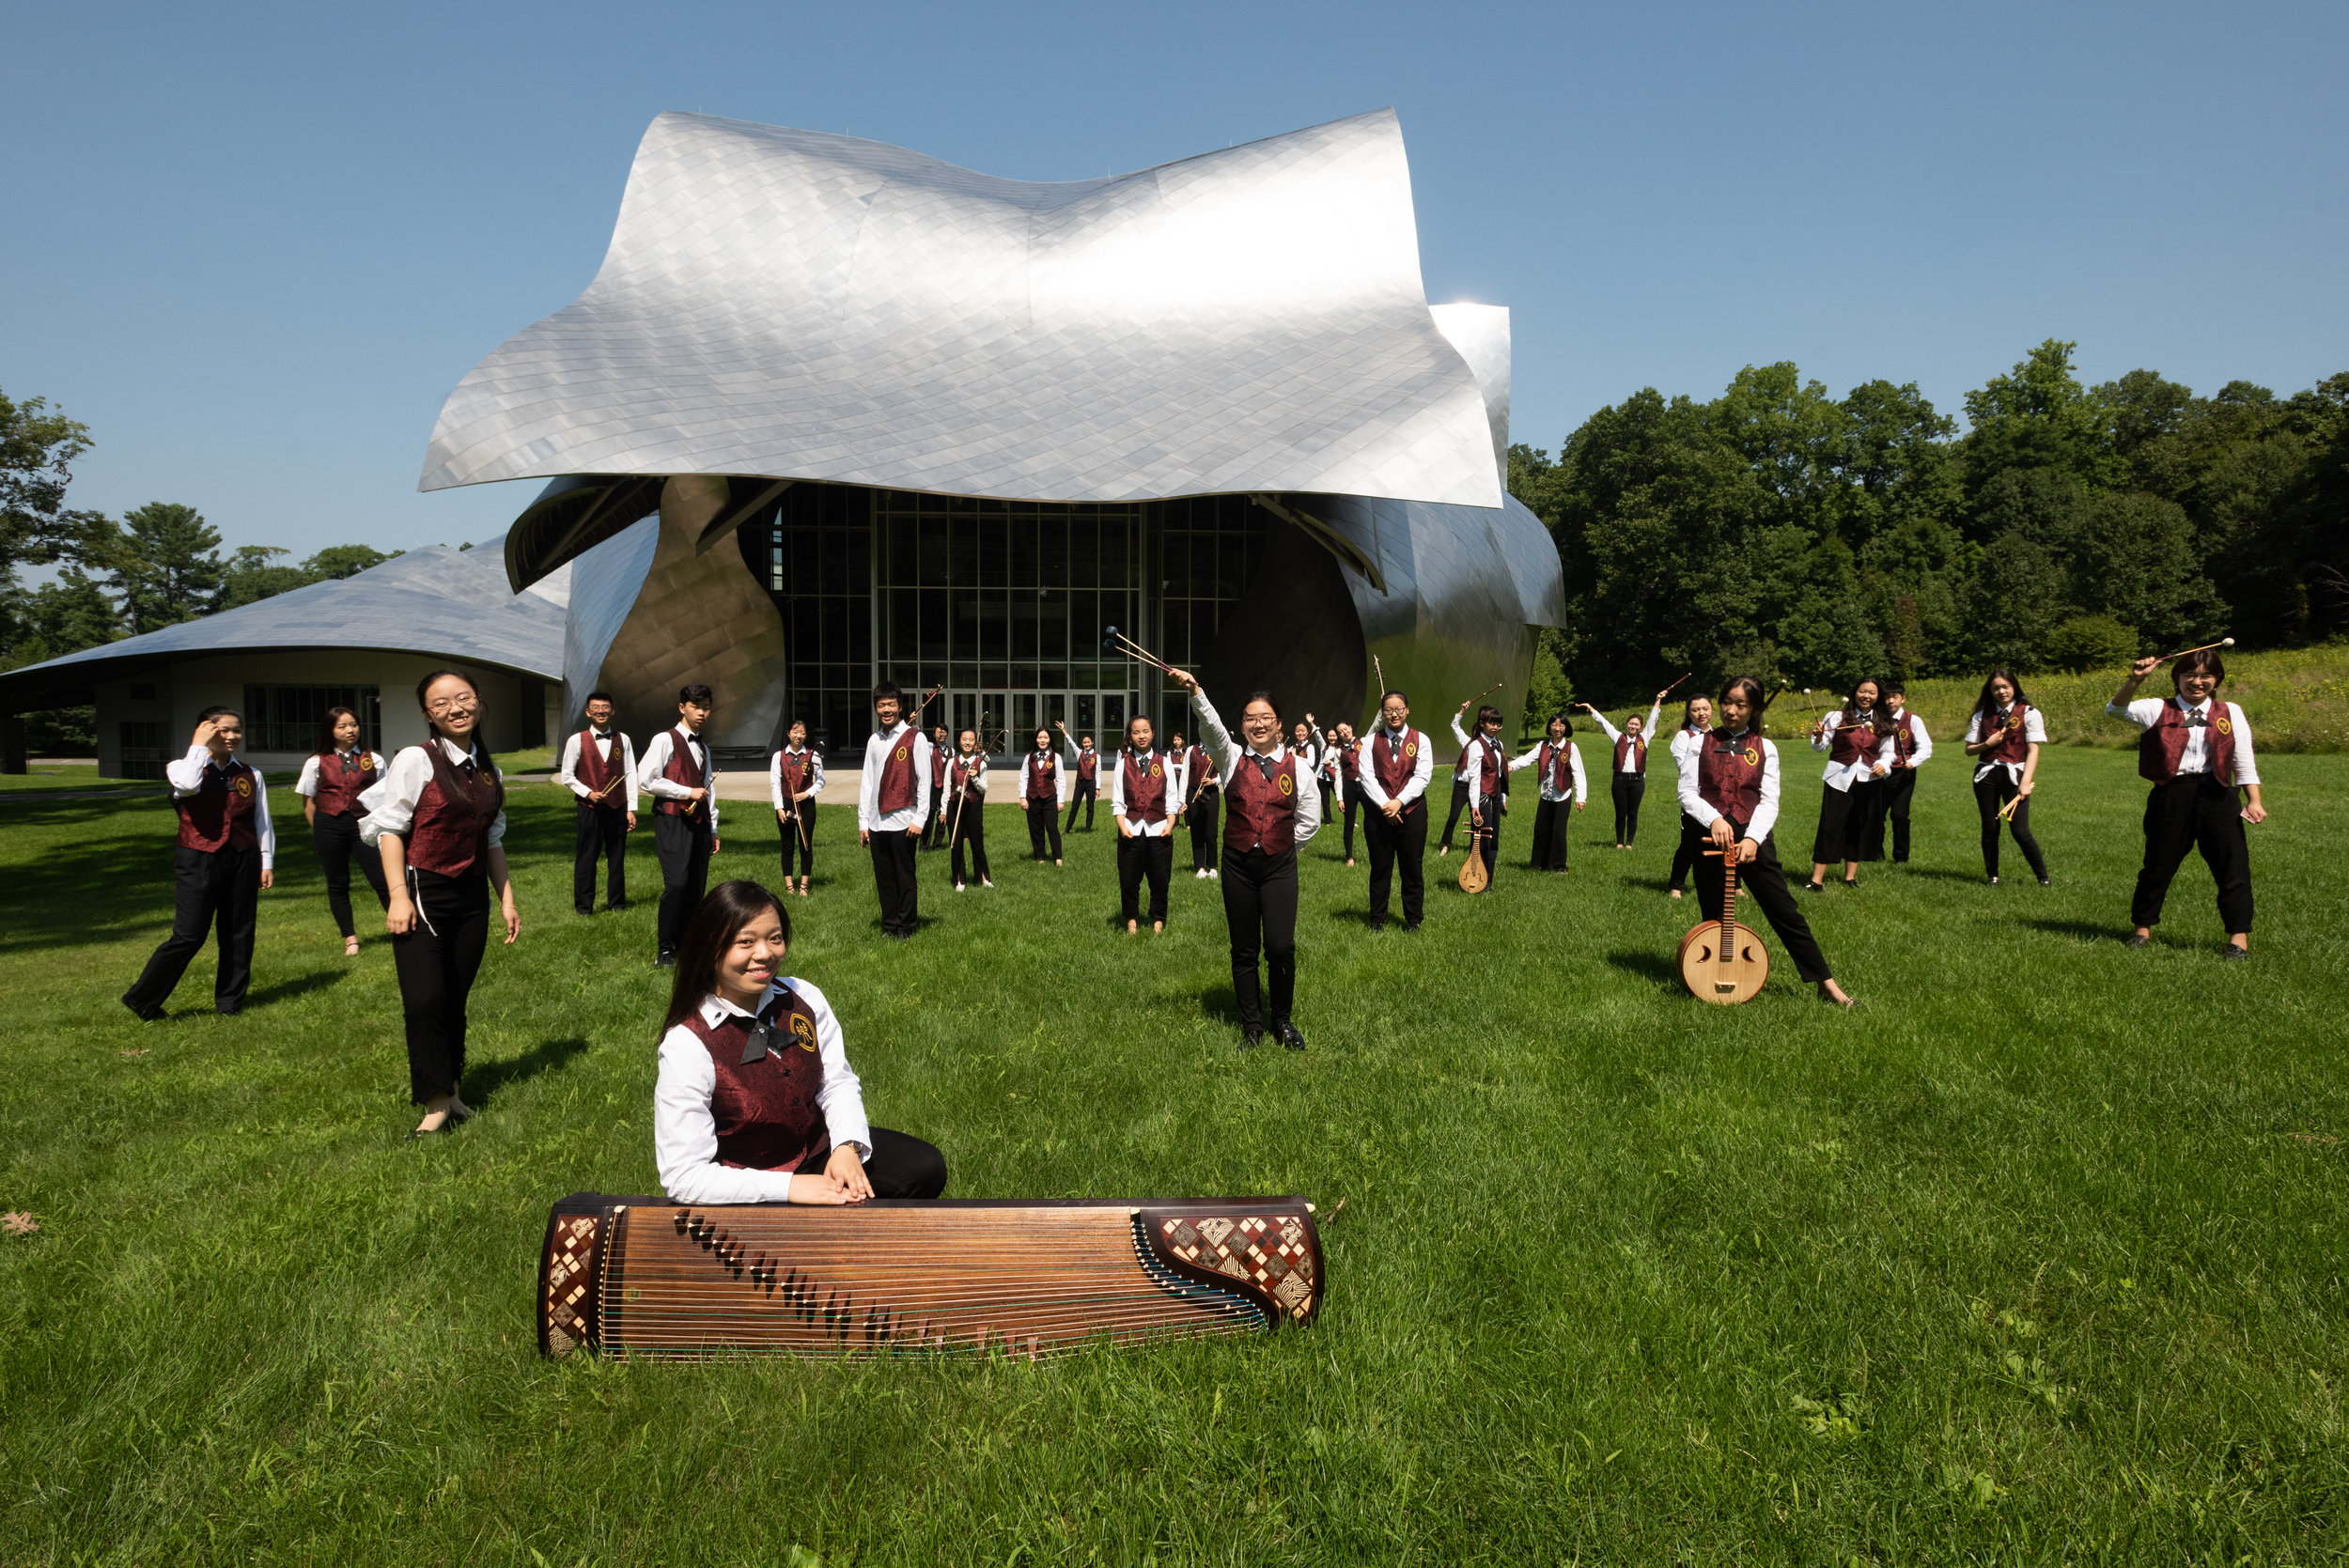 The 2018 Bard Youth Chinese Orchestra in front of the Bard College Richard B. Fisher Center for the Performing Arts. Photo by Karl Rabe.